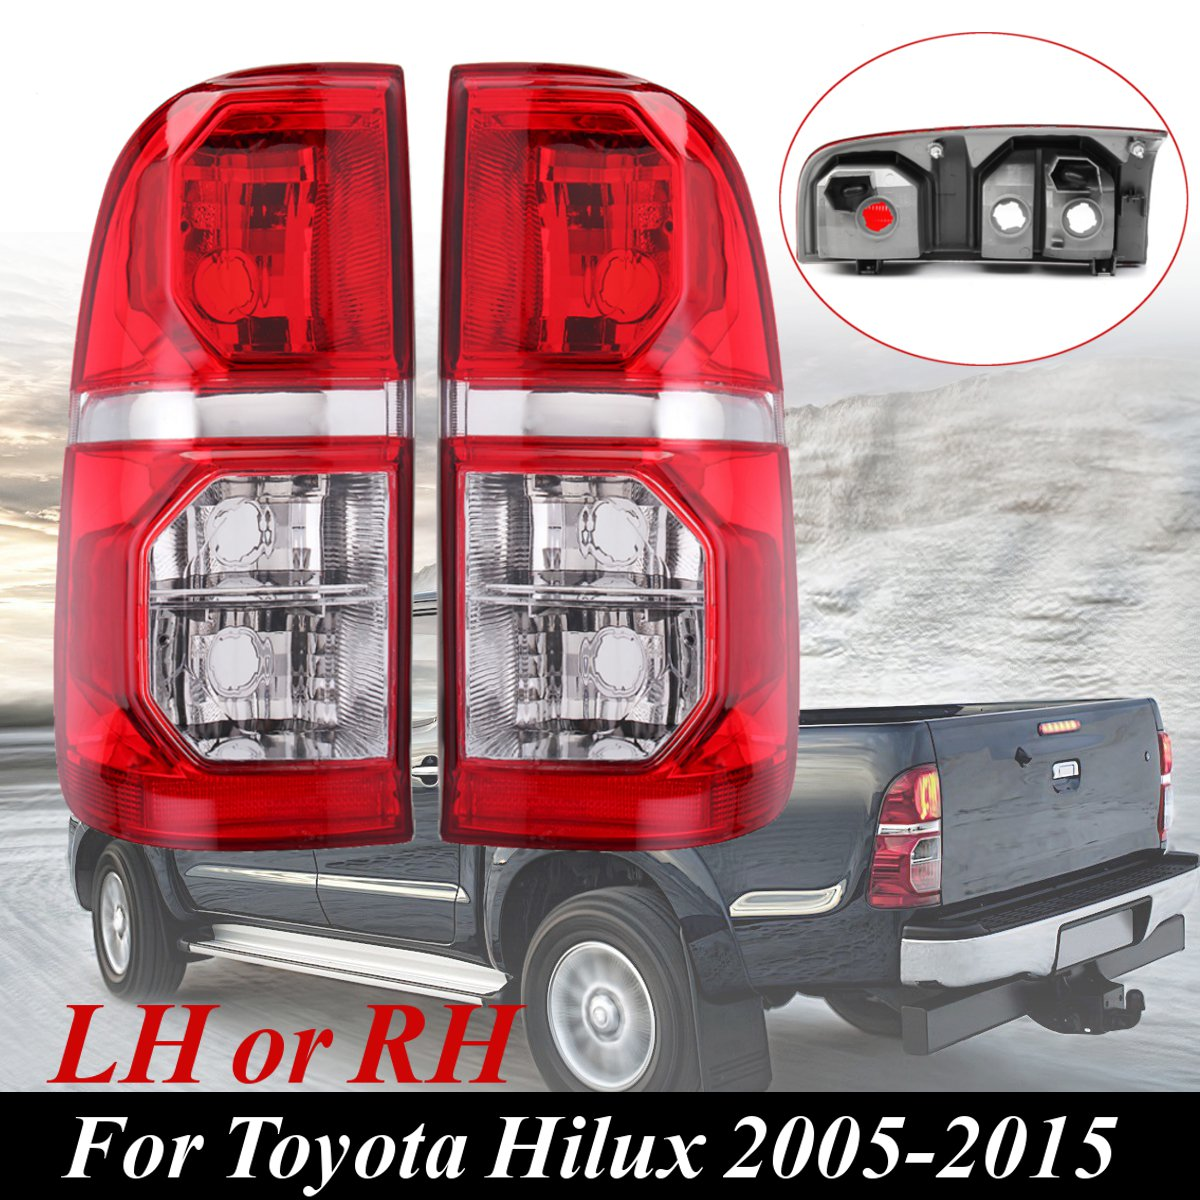 Red Left/Right Car Rear Side Tail Brake Lamp Light for Toyota Hilux 2005 2006 2007 2008 2009 2010 2011 2012 2013 2014 2015 LH/RH